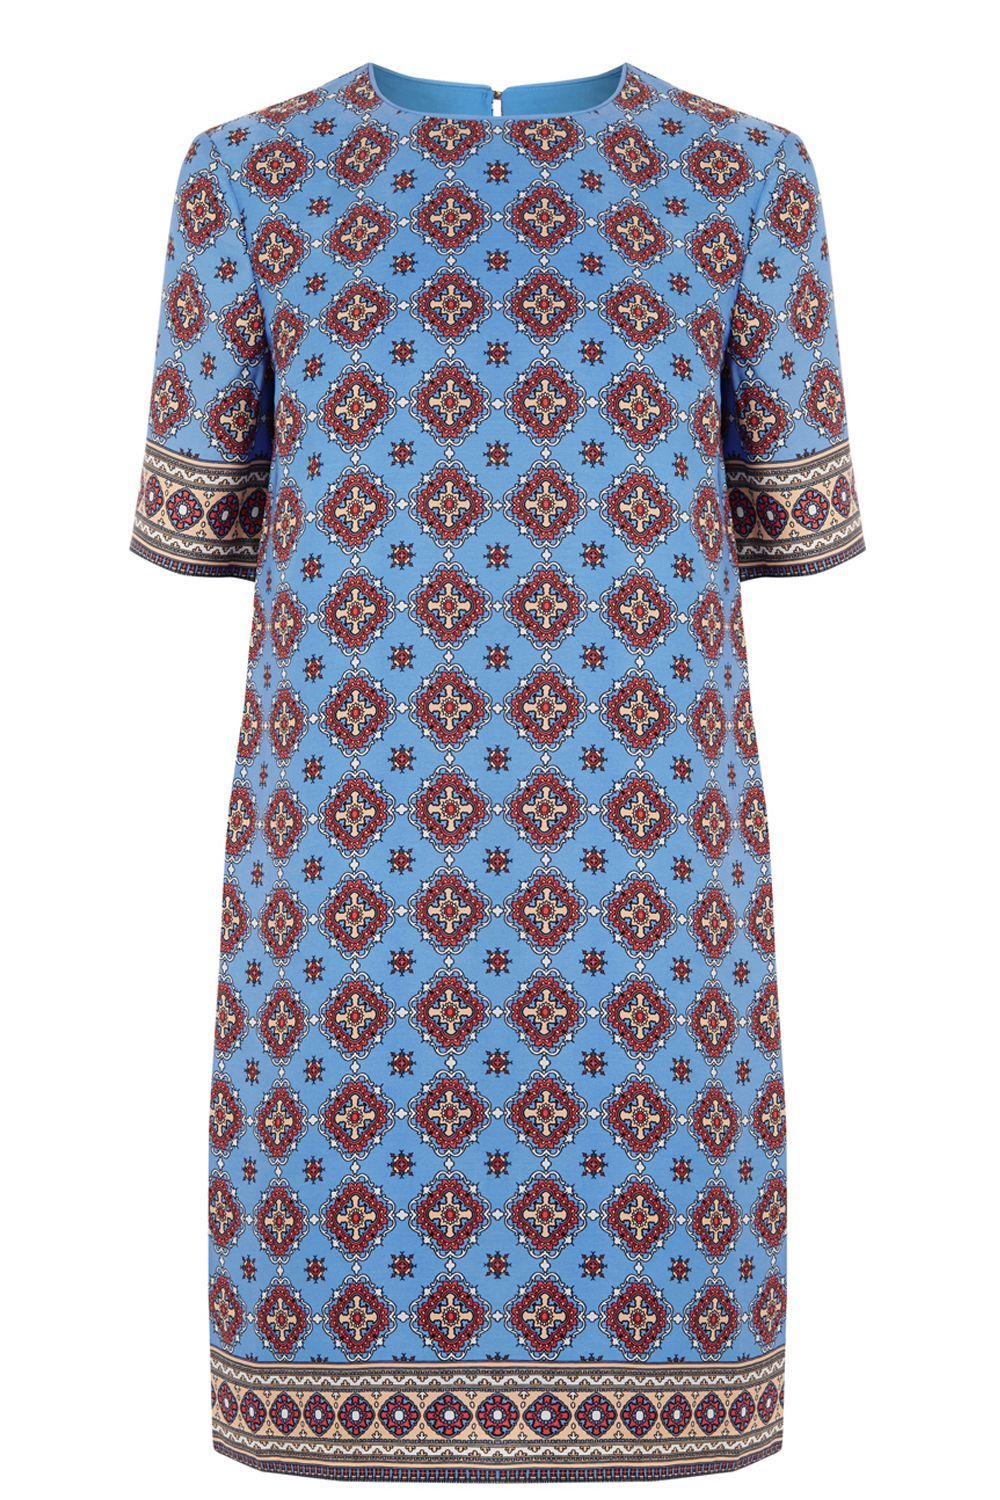 Tile Print Shift Dress, Blue - style: shift; length: mid thigh; pattern: paisley; secondary colour: burgundy; predominant colour: diva blue; fit: straight cut; fibres: polyester/polyamide - 100%; neckline: crew; sleeve length: half sleeve; sleeve style: standard; pattern type: fabric; pattern size: standard; texture group: woven light midweight; occasions: creative work; multicoloured: multicoloured; season: a/w 2016; wardrobe: highlight